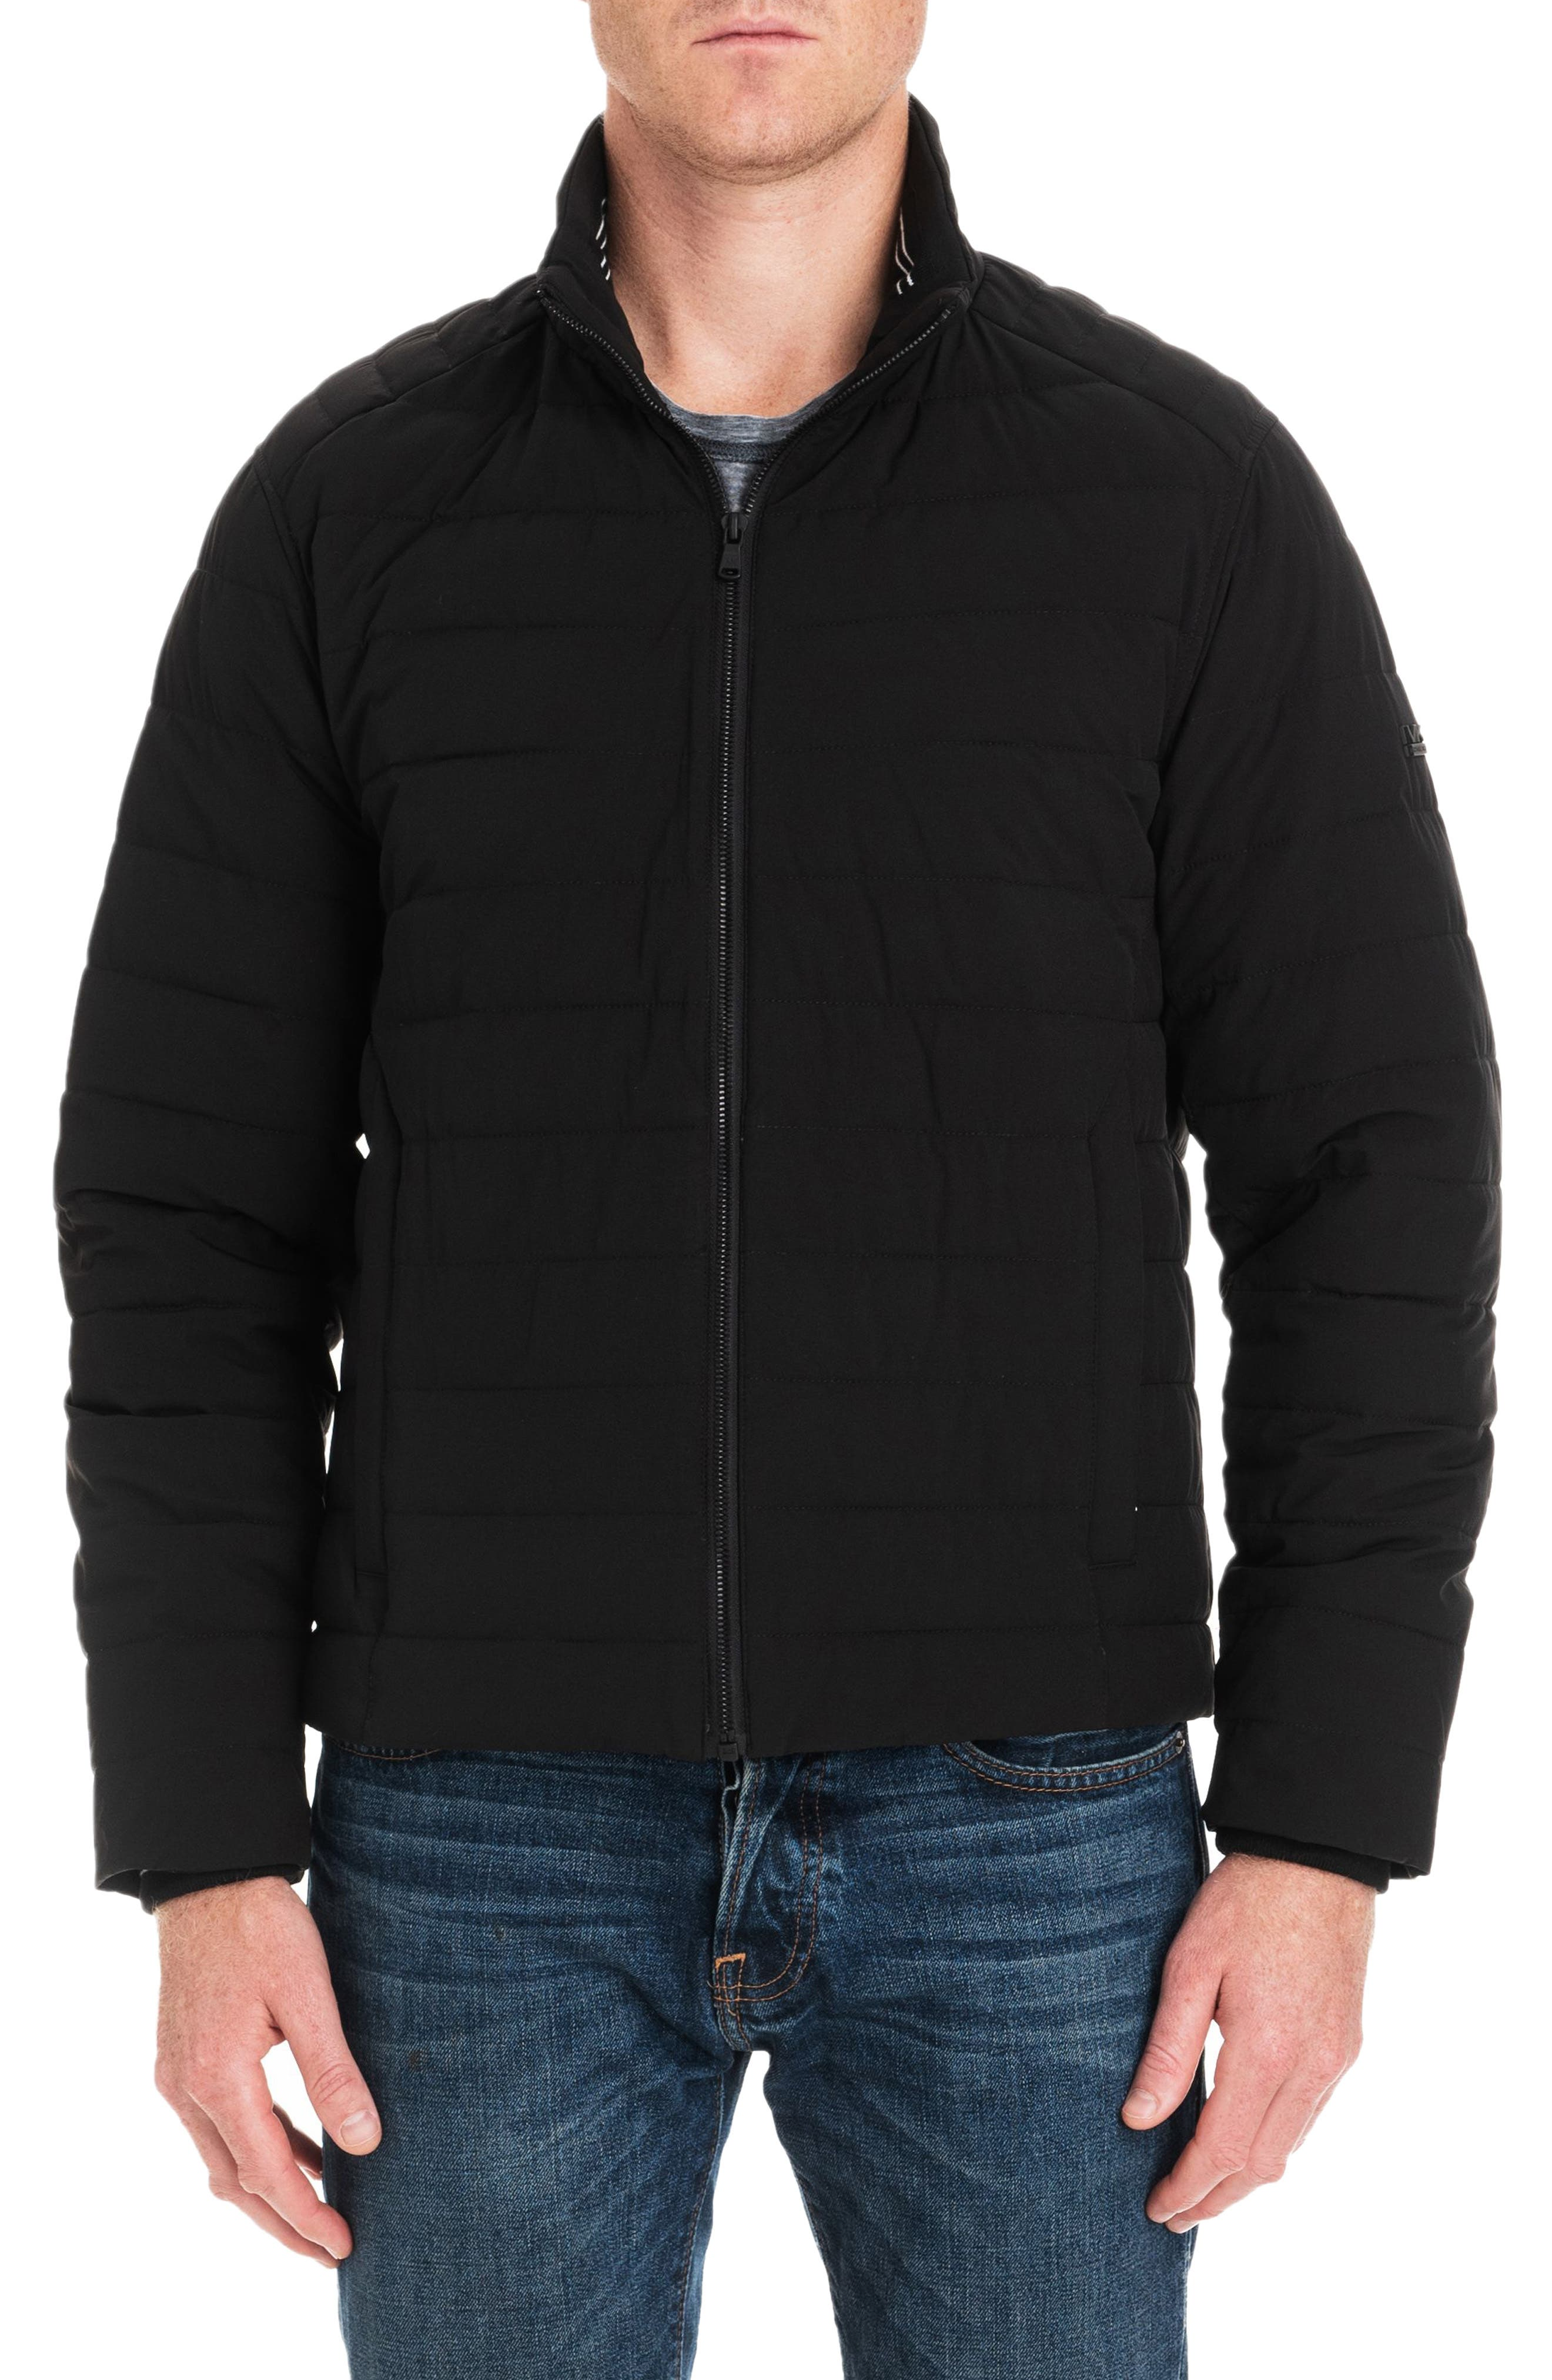 Fulton Quilted Jacket,                             Main thumbnail 1, color,                             BLACK/ MIDNIGHT